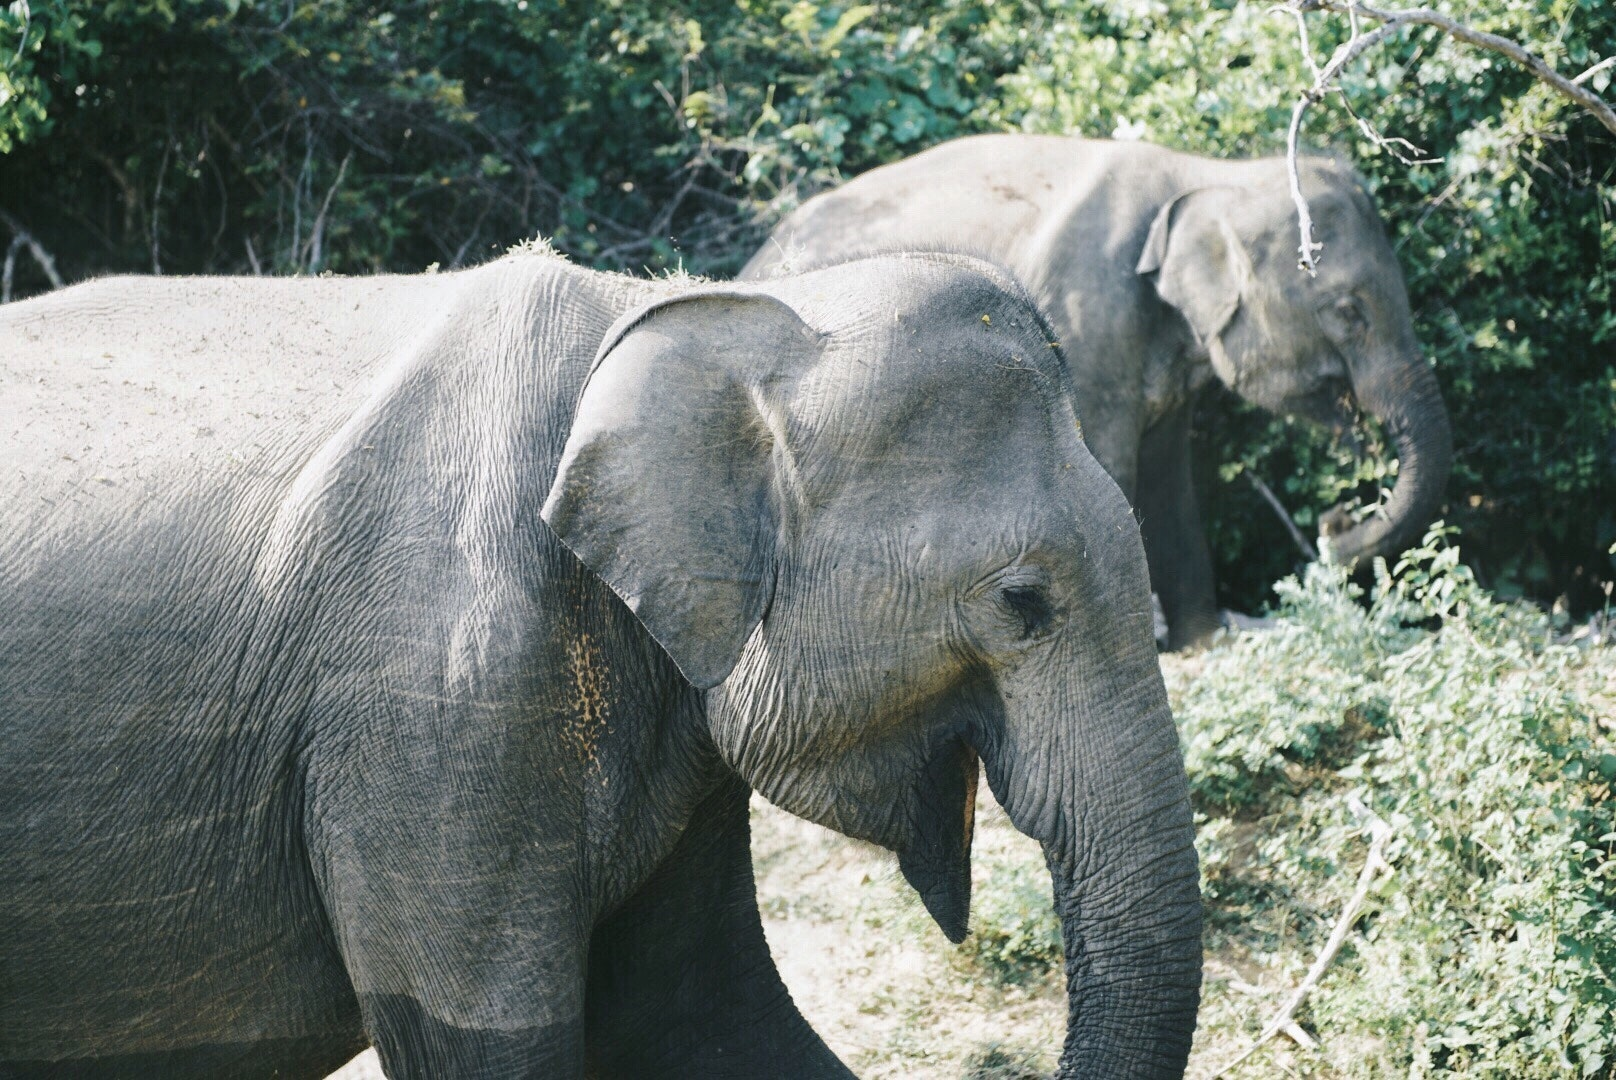 """We saw these two elephants, a mother and child, in Yala National Park,"" Rudd says."